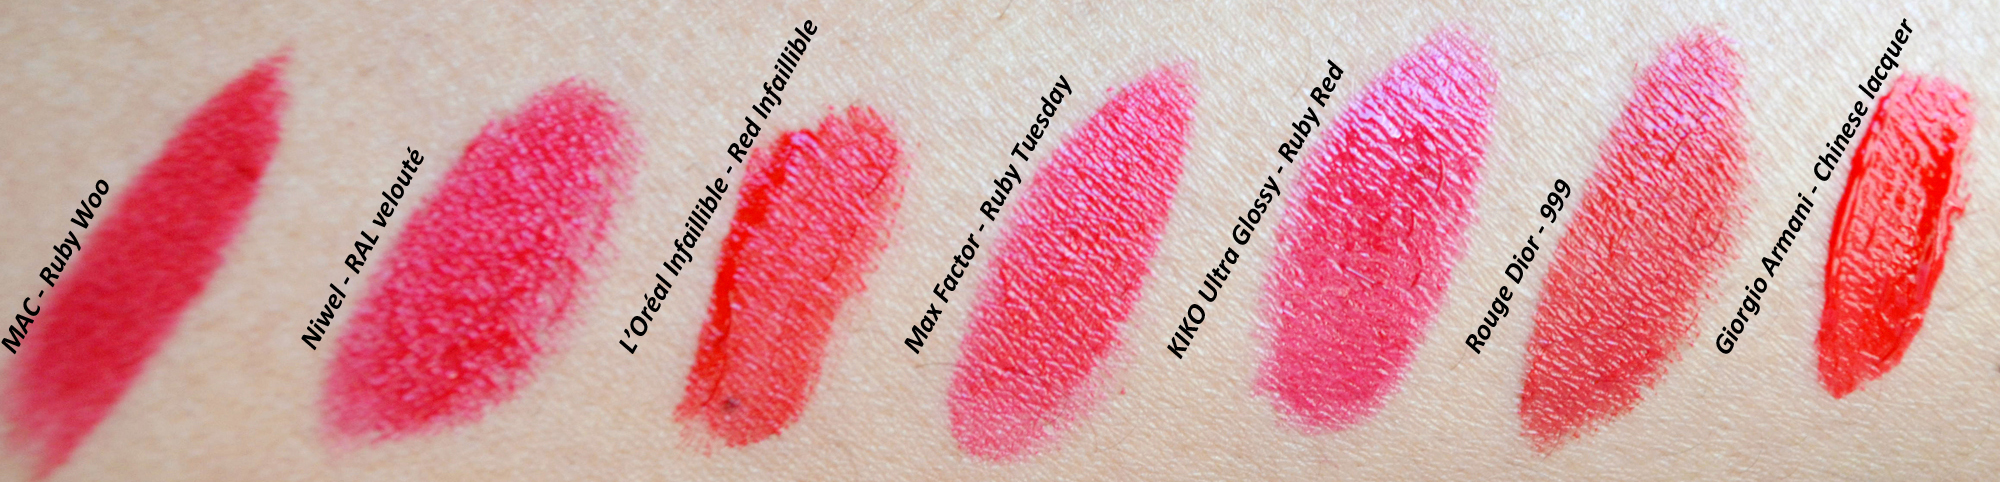 mercredie-blog-mode-geneve-beaute-maquillage-rouges-a-levres-rouge-lipstick-iconique-mac-ruby-niwel-giorgio-armani-l-oreal-dior-swatch-swatches-test